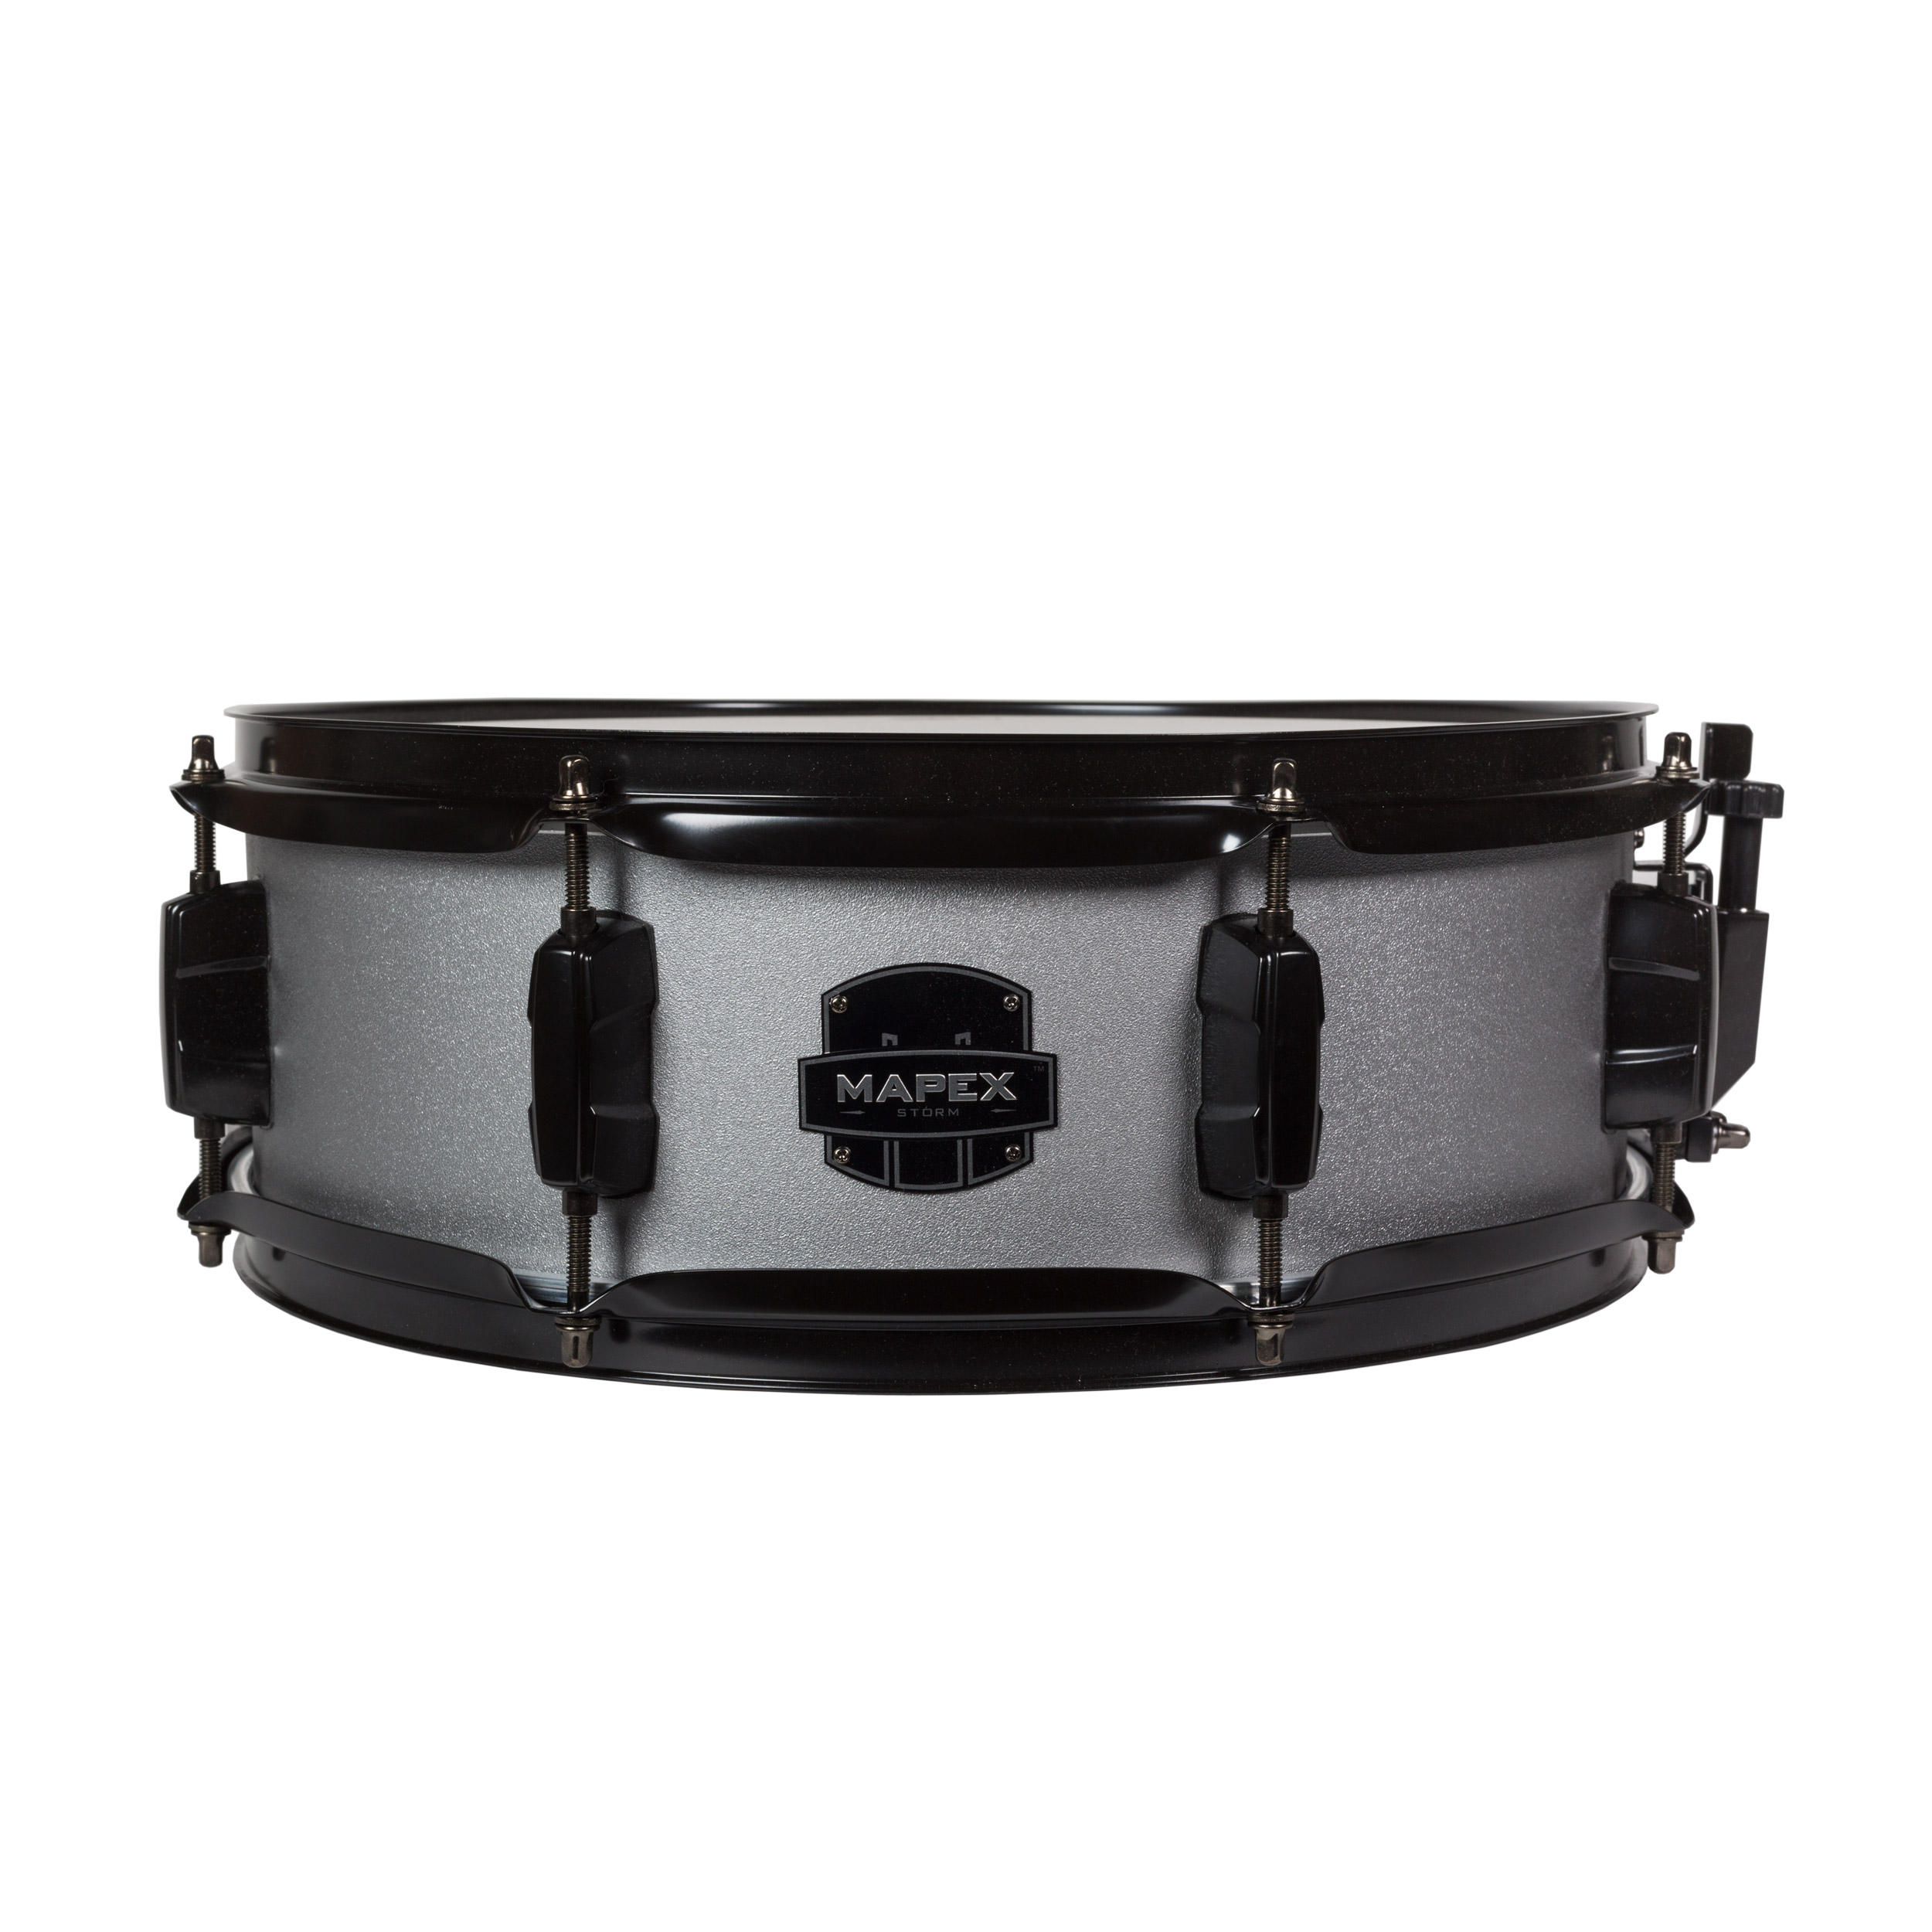 Details about Mapex STS4500-IG Storm Series 5x14 Snare Drum in Iron Grey